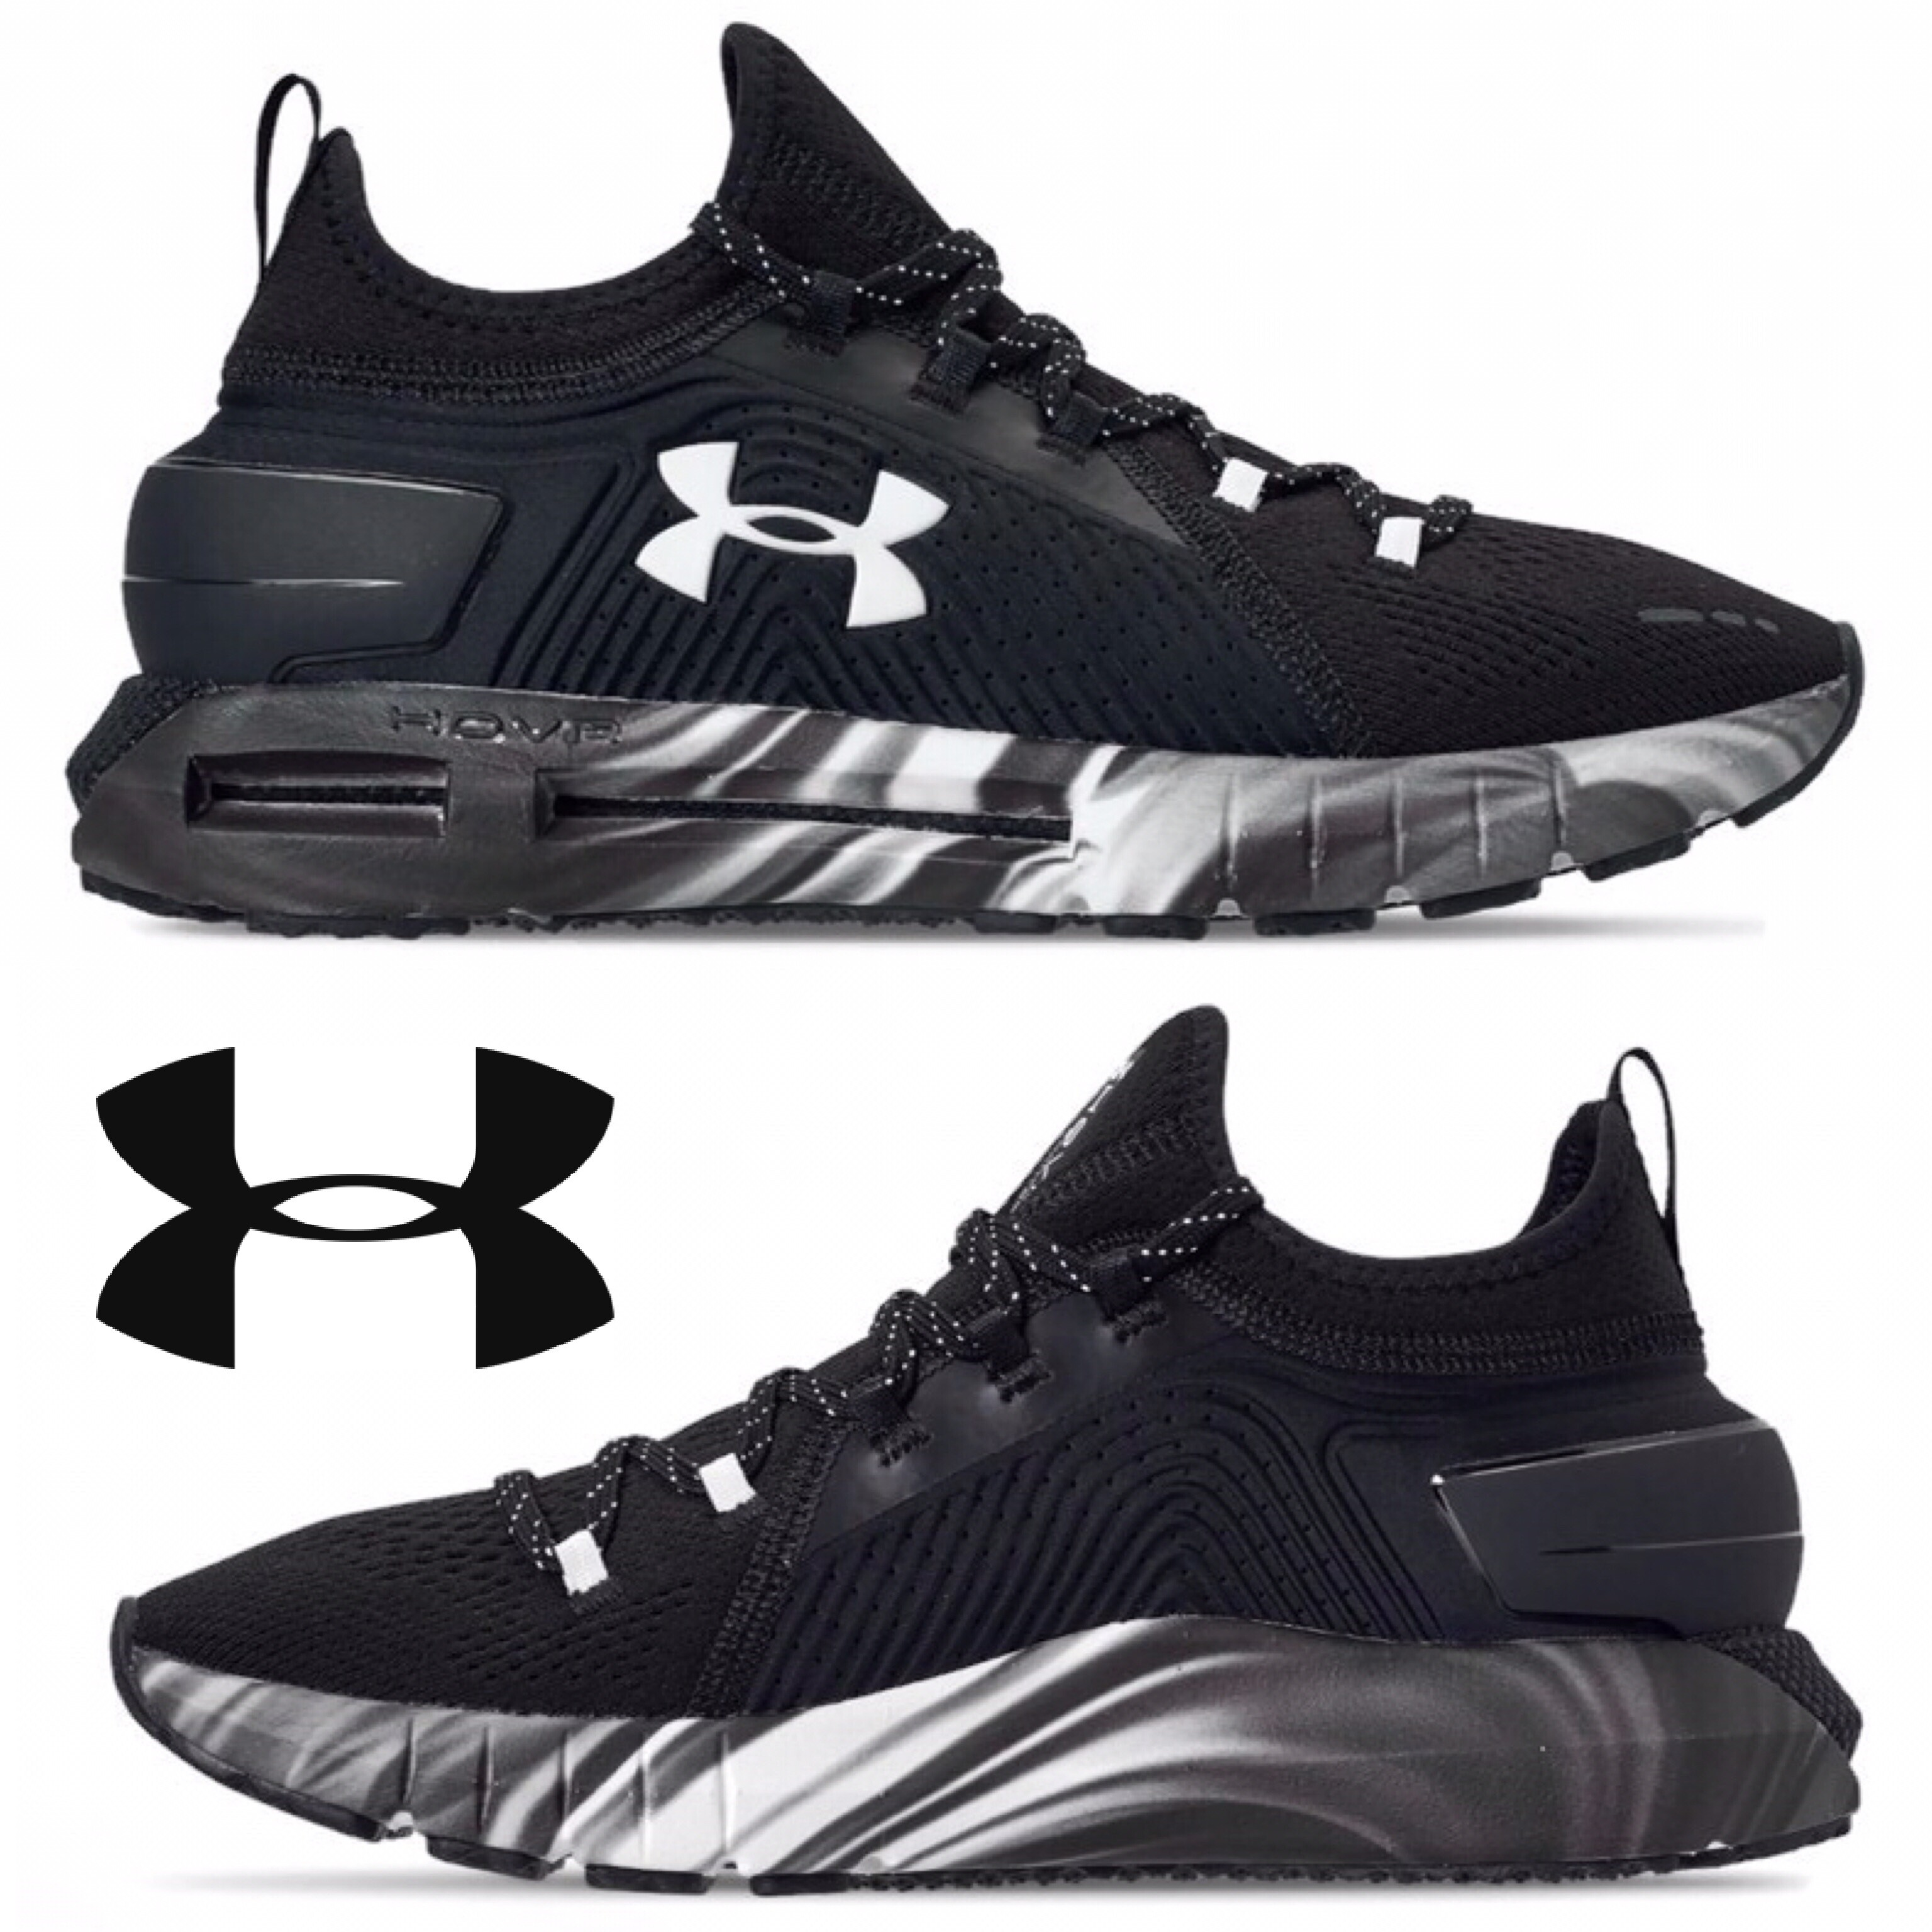 Under Armour's HOVR connected shoes aim to make you a